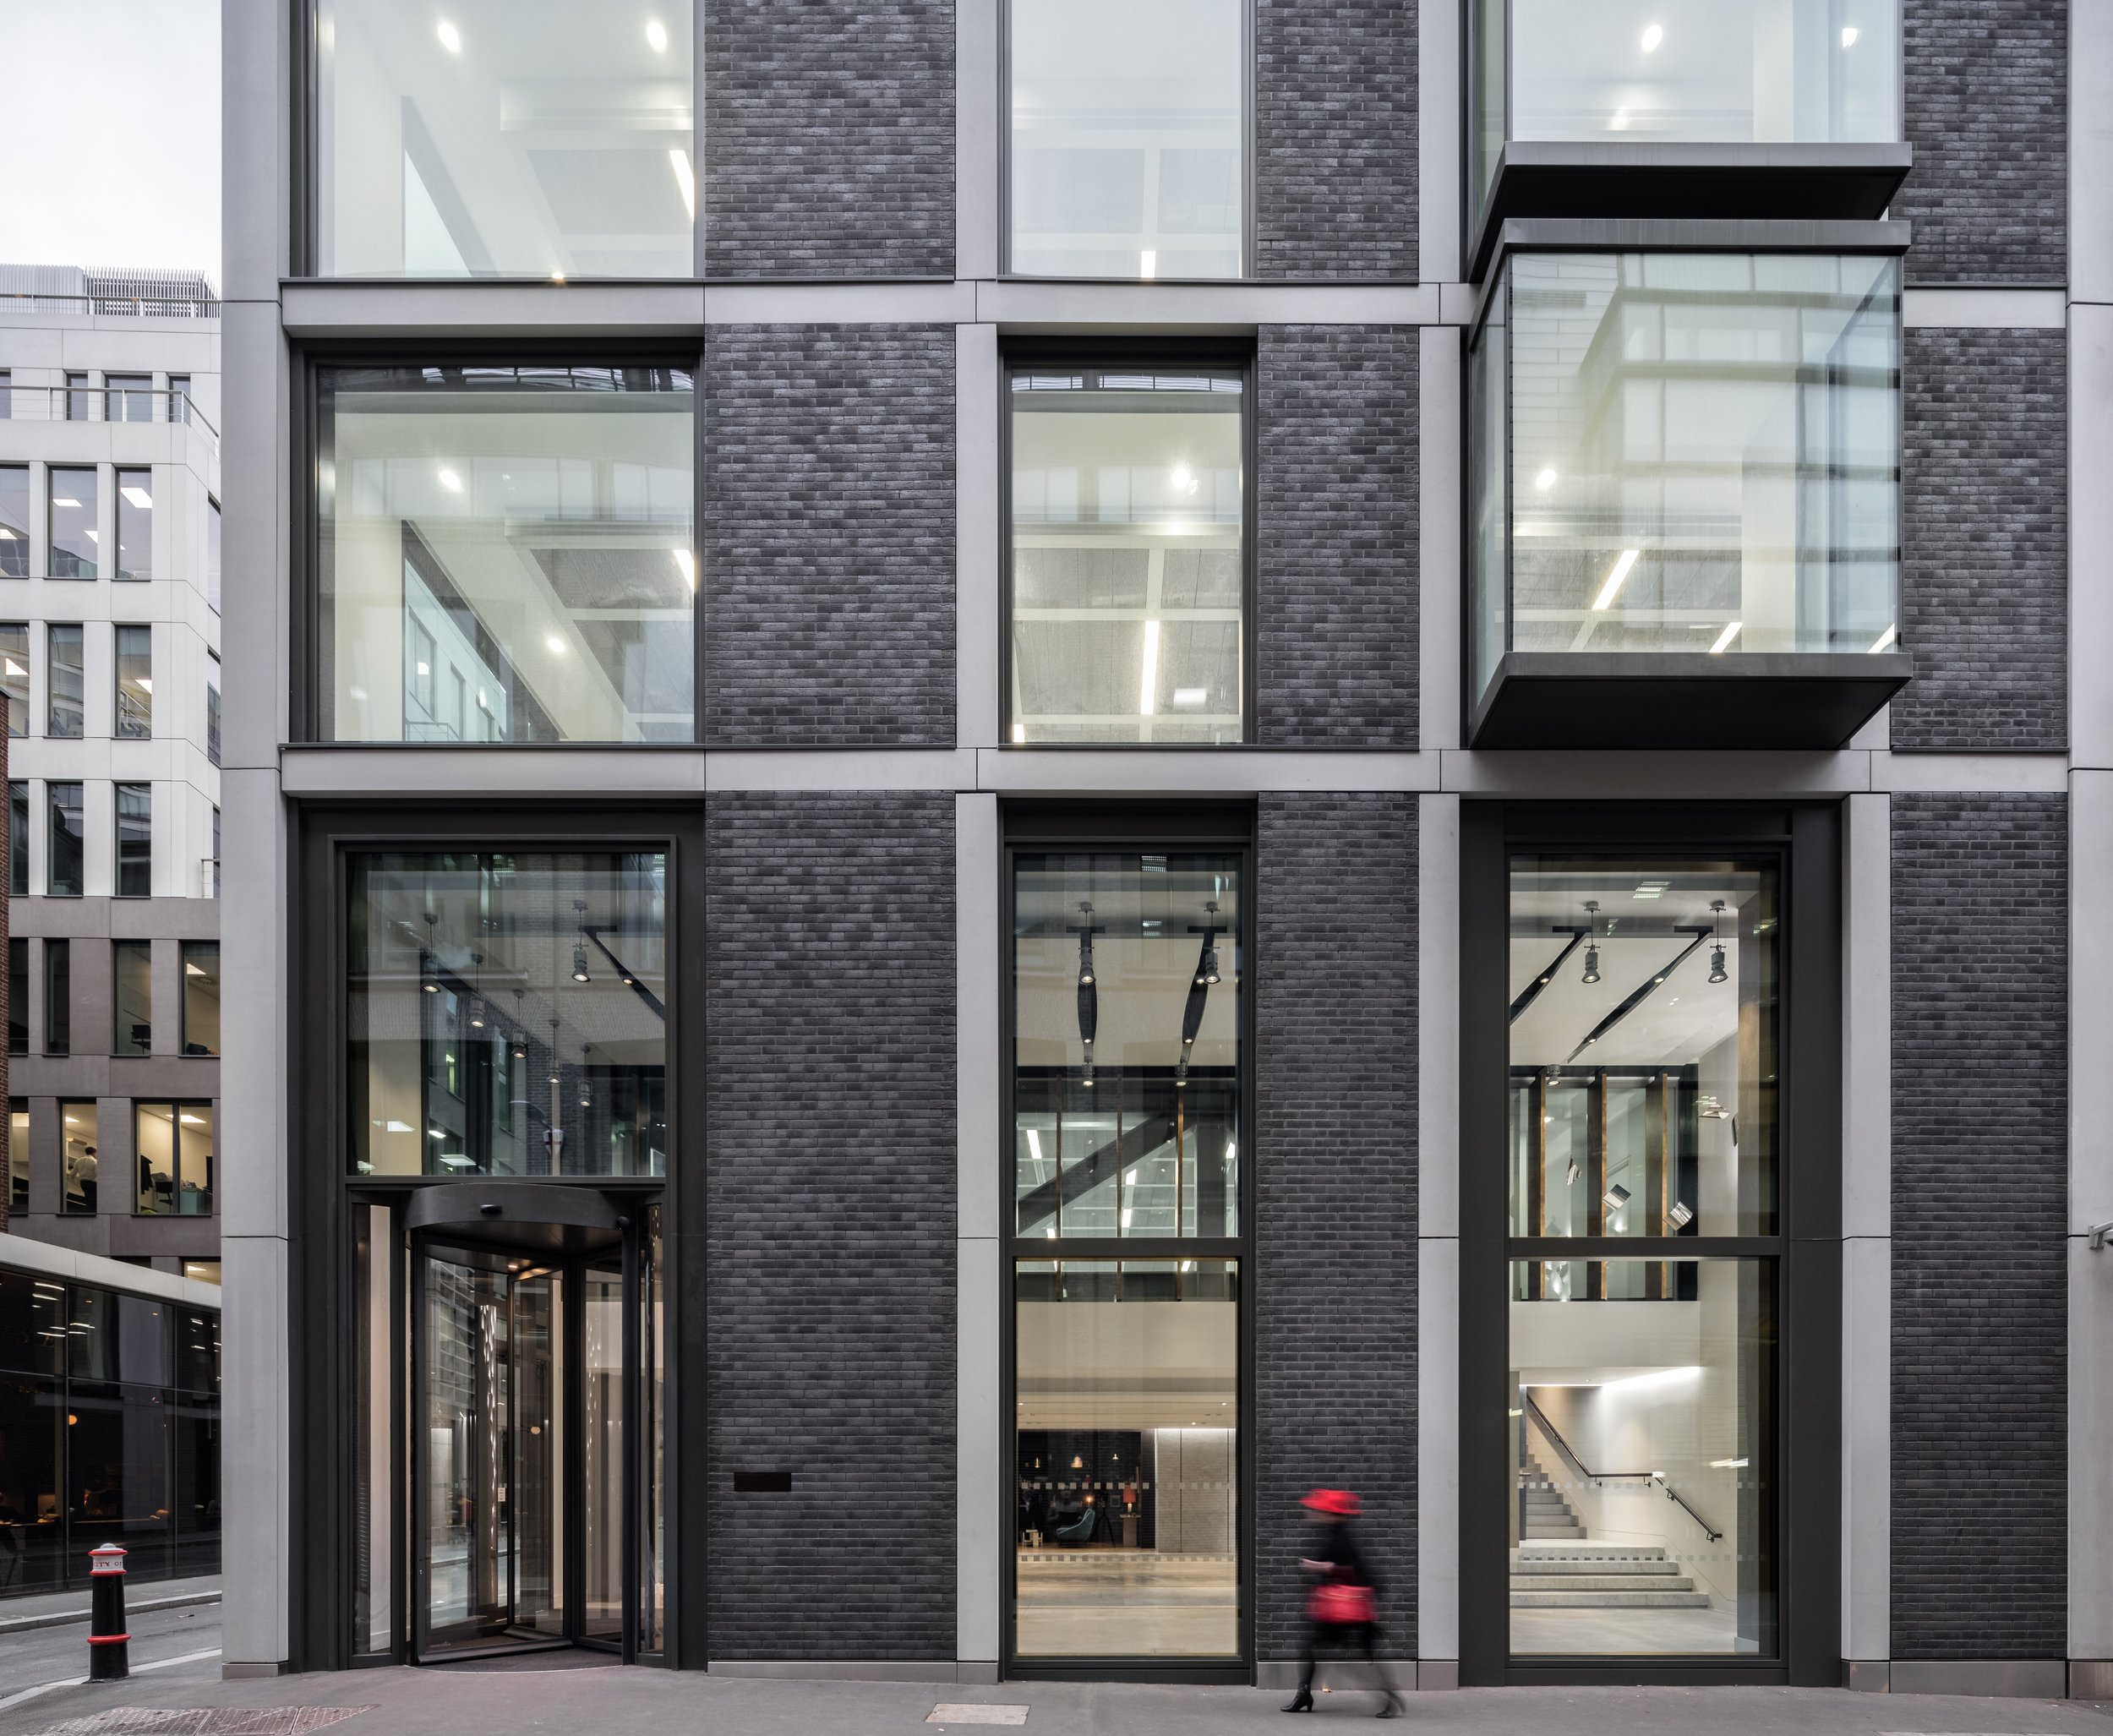 Bureau, JRA's recently completed office project in London's Fetter Lane, achieved a BREEAM Excellent rating in recognition of its environmental credentials.